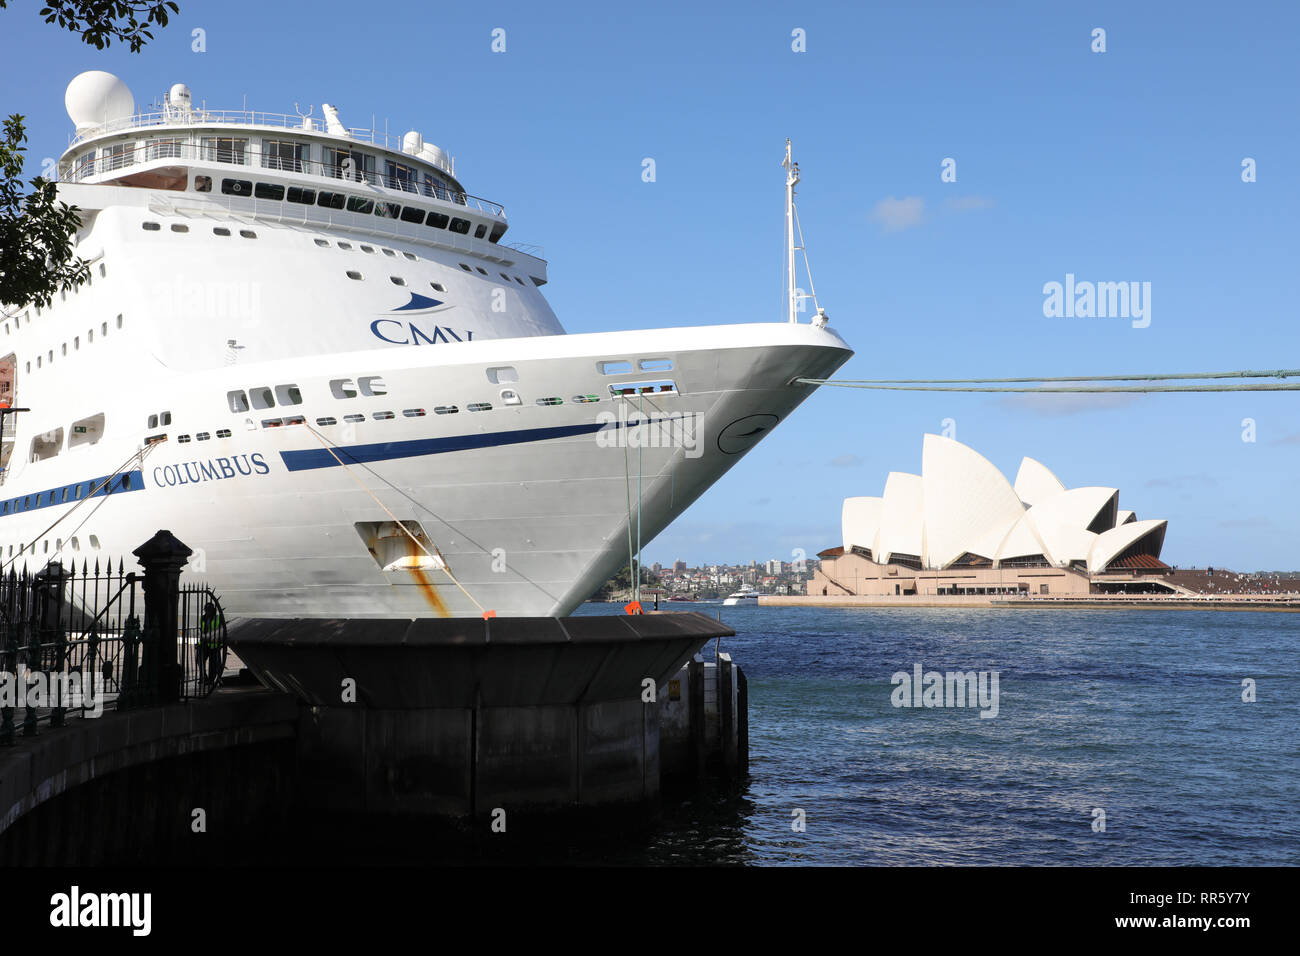 Cruise & Maritime Voyages' MV Columbus cruise ship moored at the Overseas Passenger Terminal in Sydney, Australia. - Stock Image